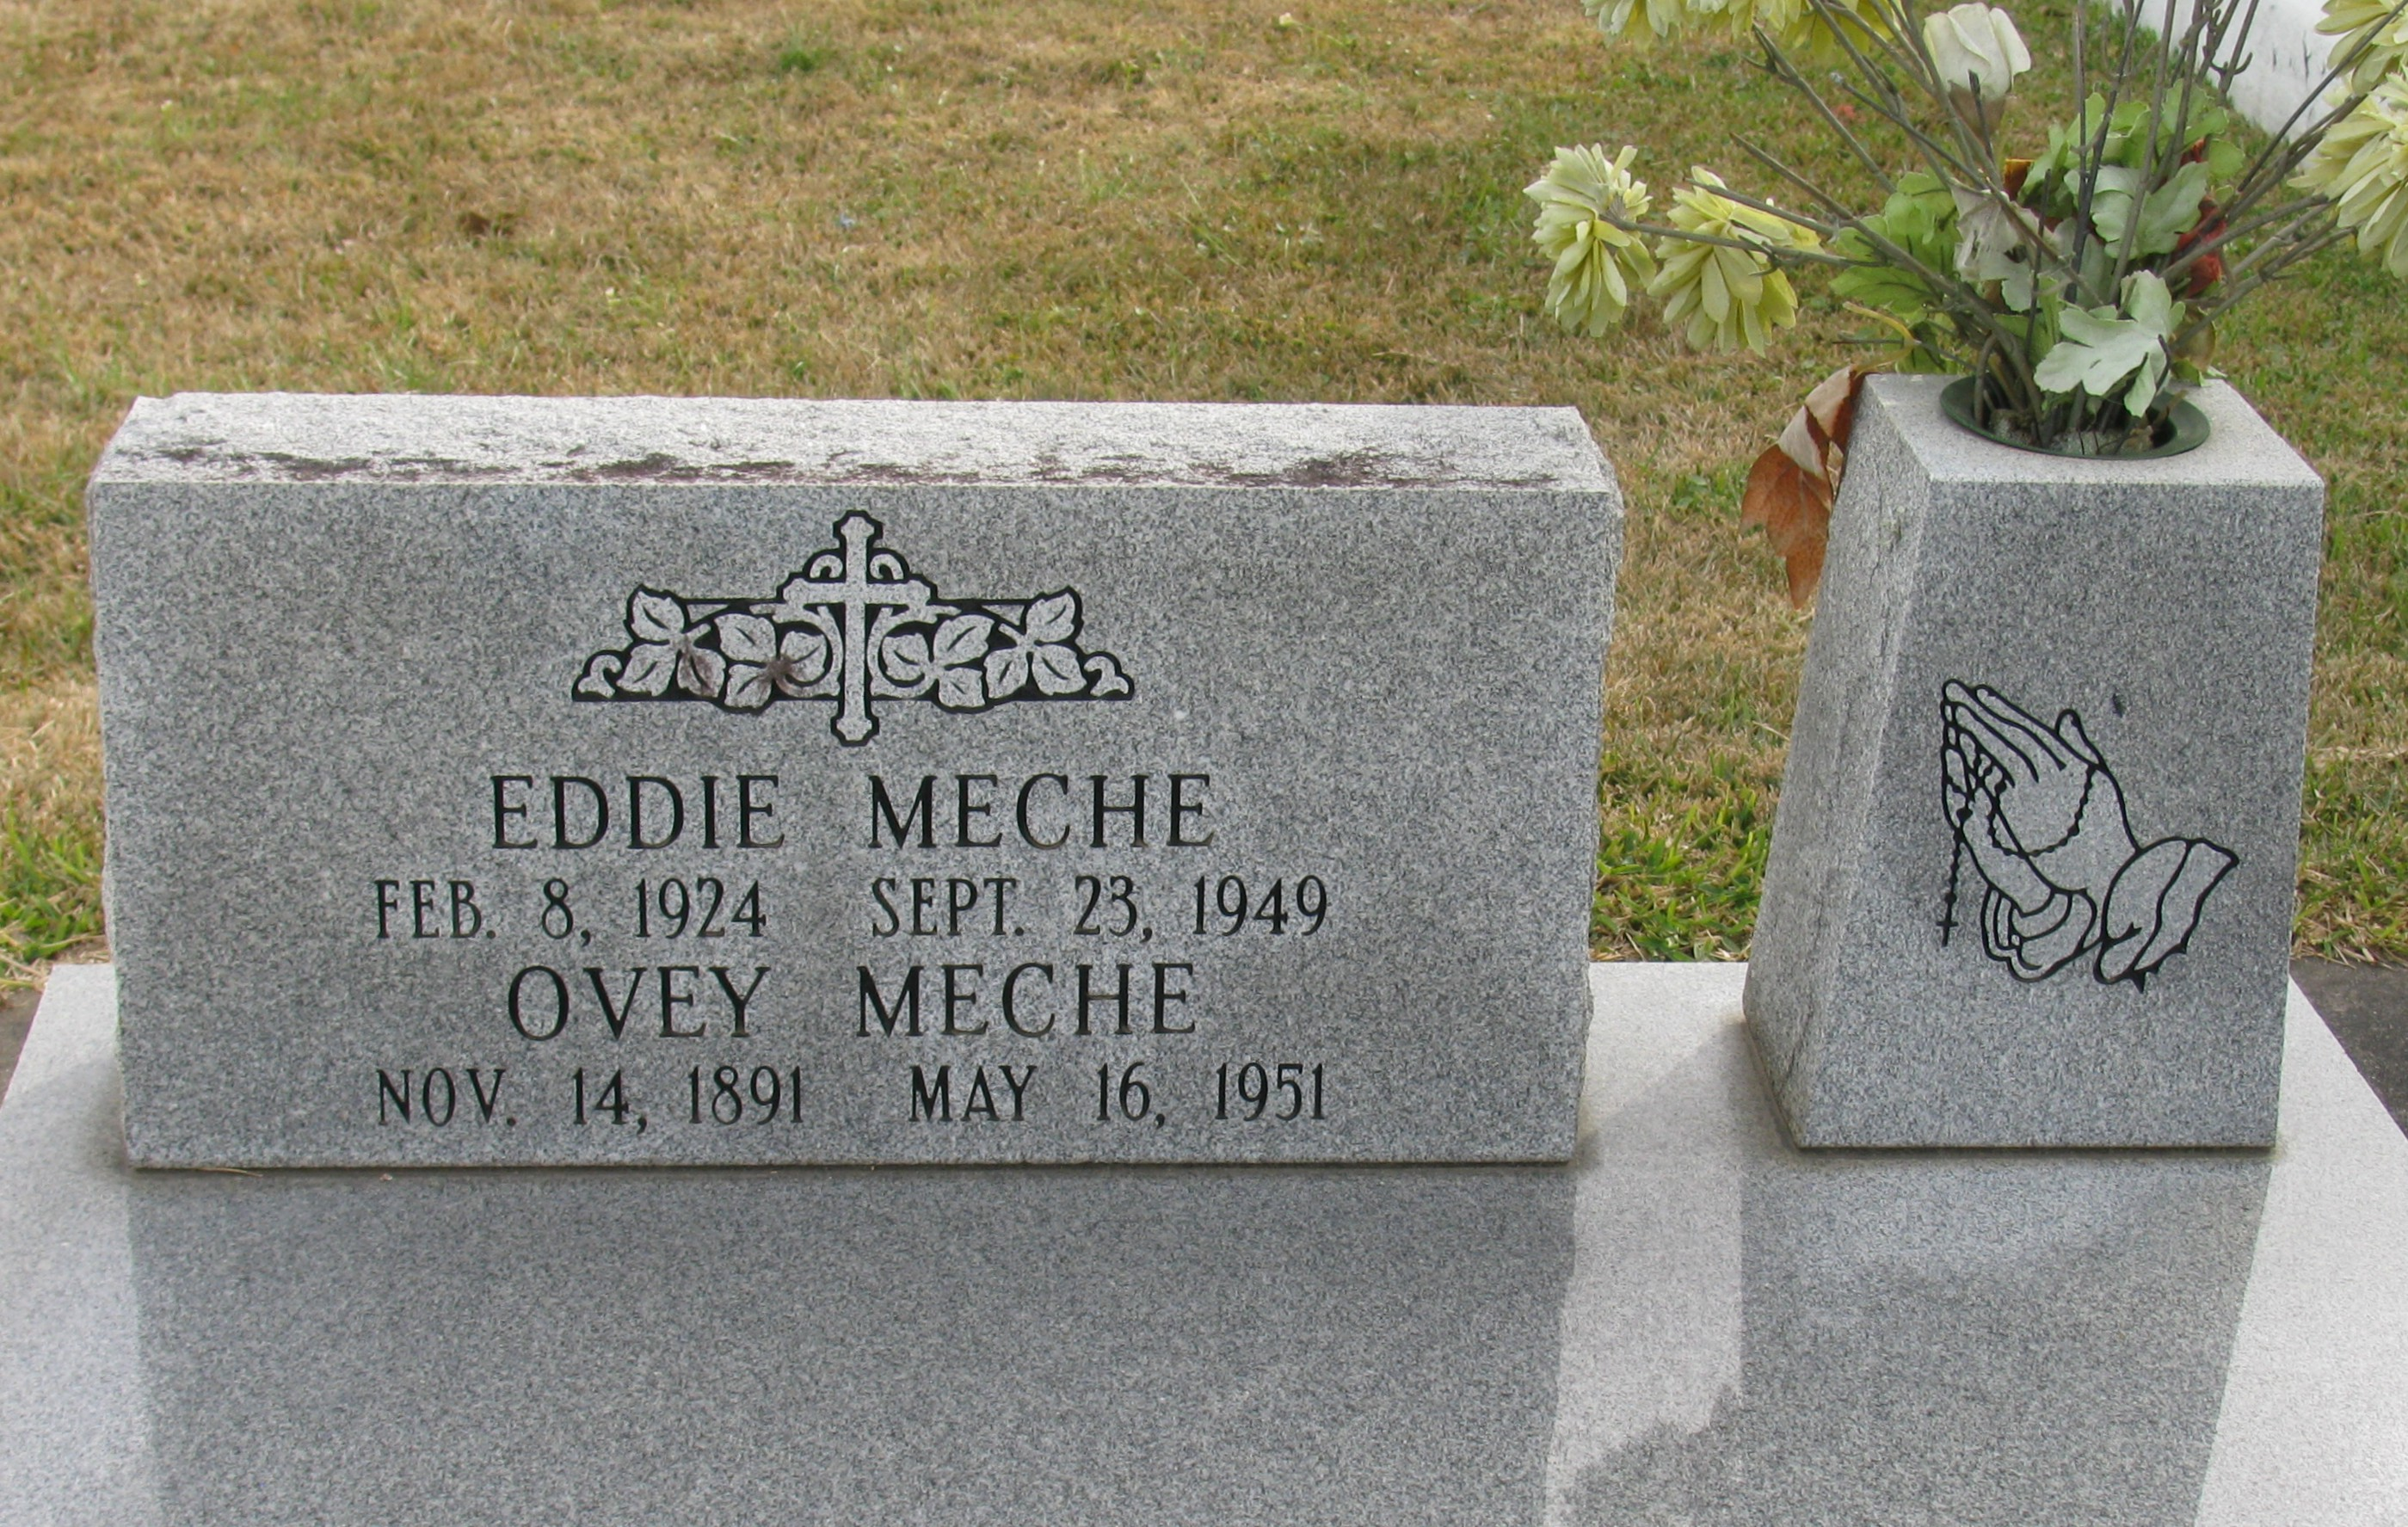 Ovey Meche Find A Grave Memorial